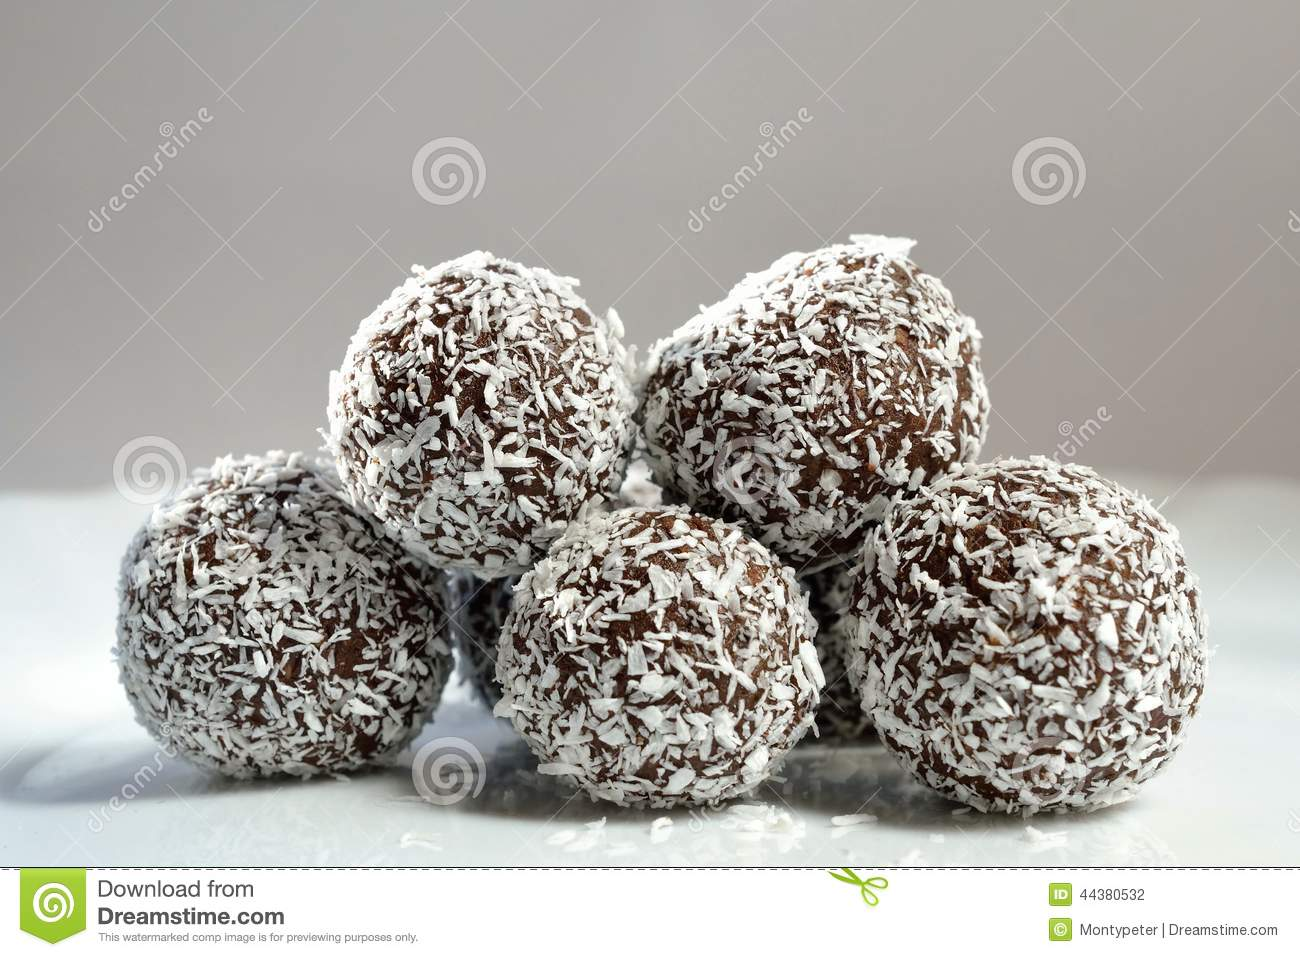 Christmas Cookies - Rum Balls In Coconut Stock Photo - Image: 44380532